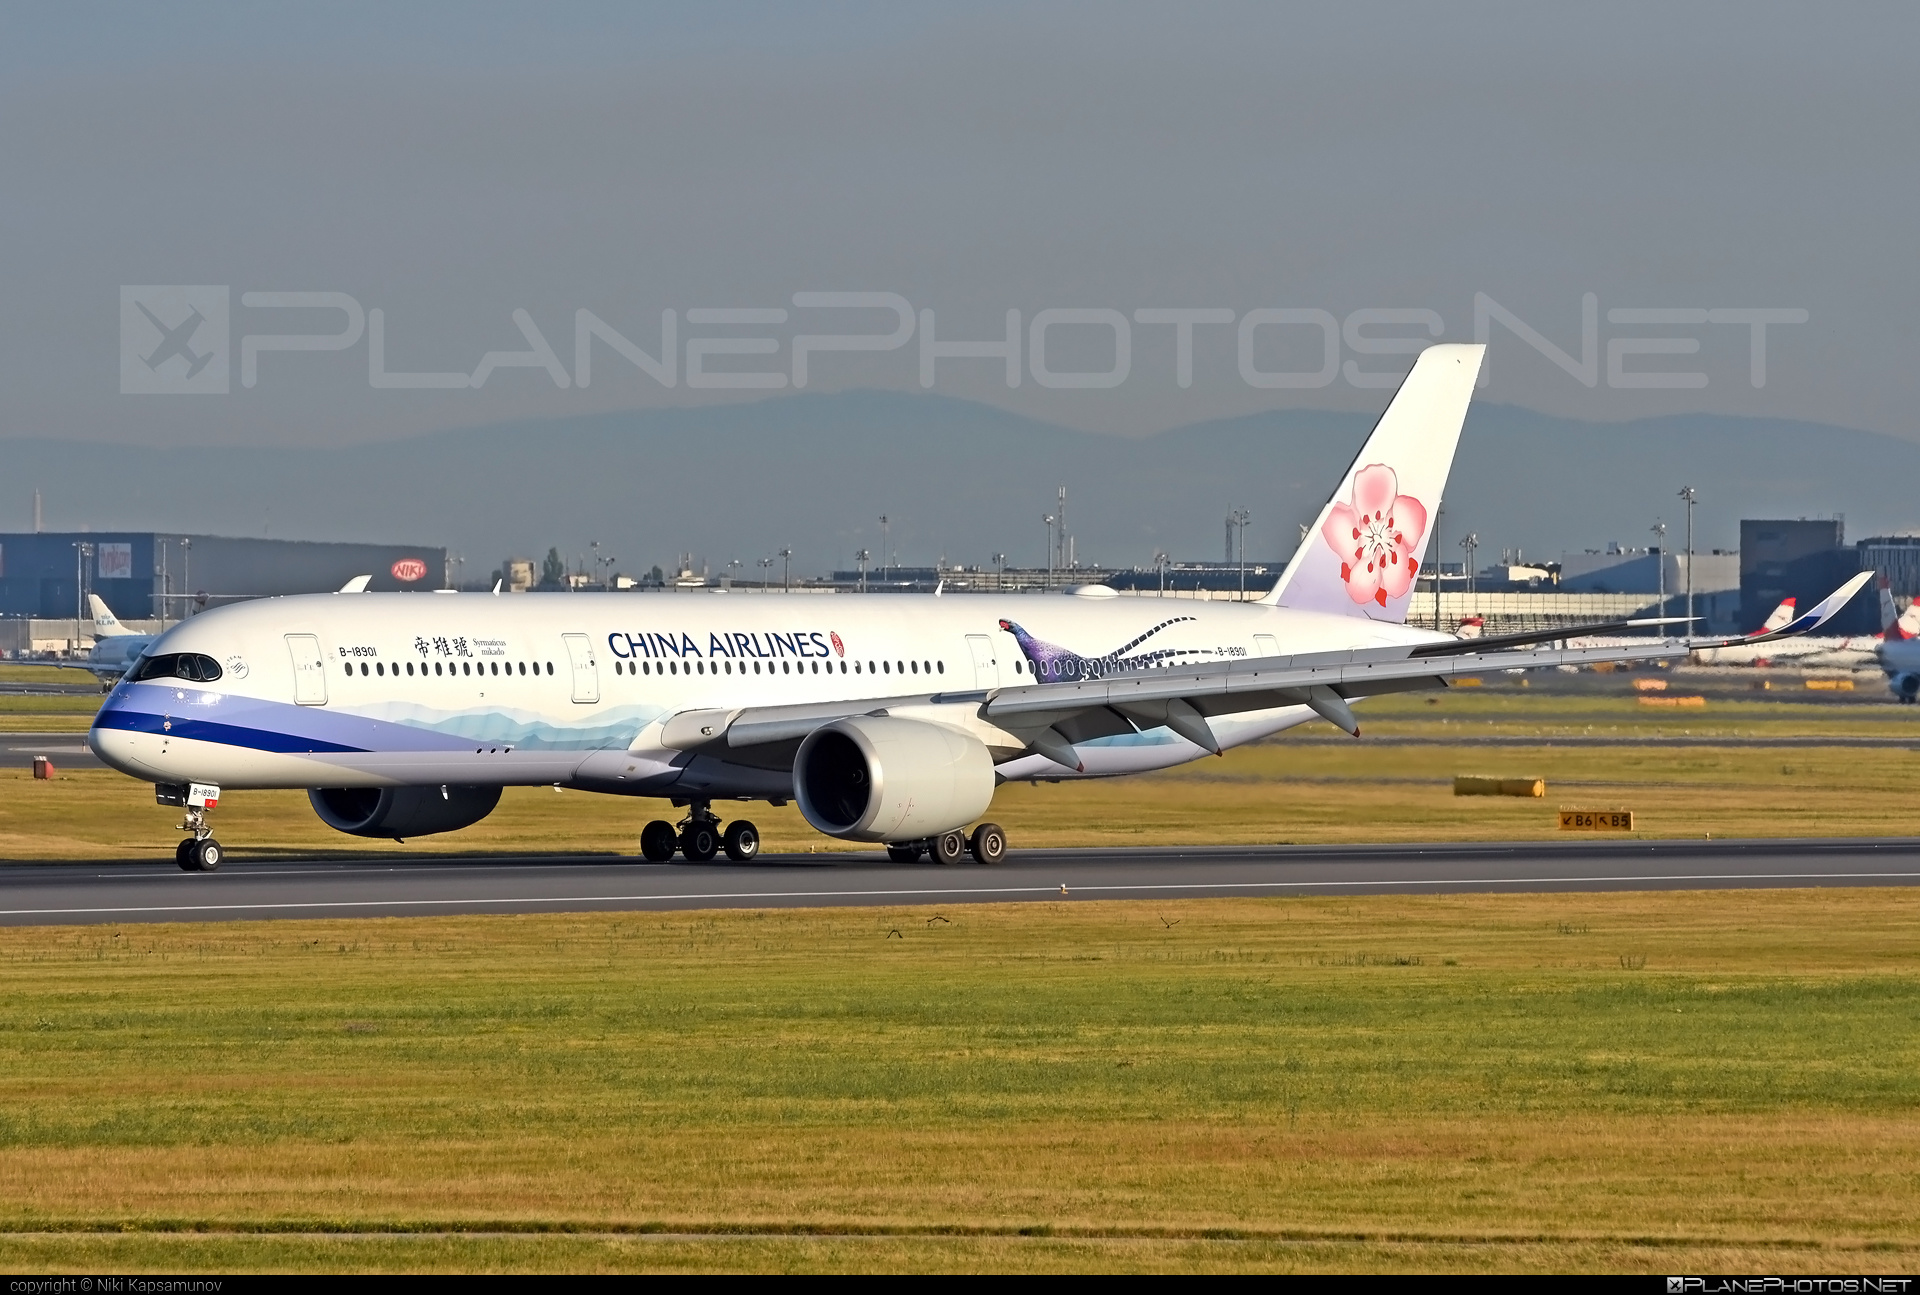 Airbus A350-941 - B-18901 operated by China Airlines #a350 #a350family #airbus #airbus350 #chinaairlines #xwb